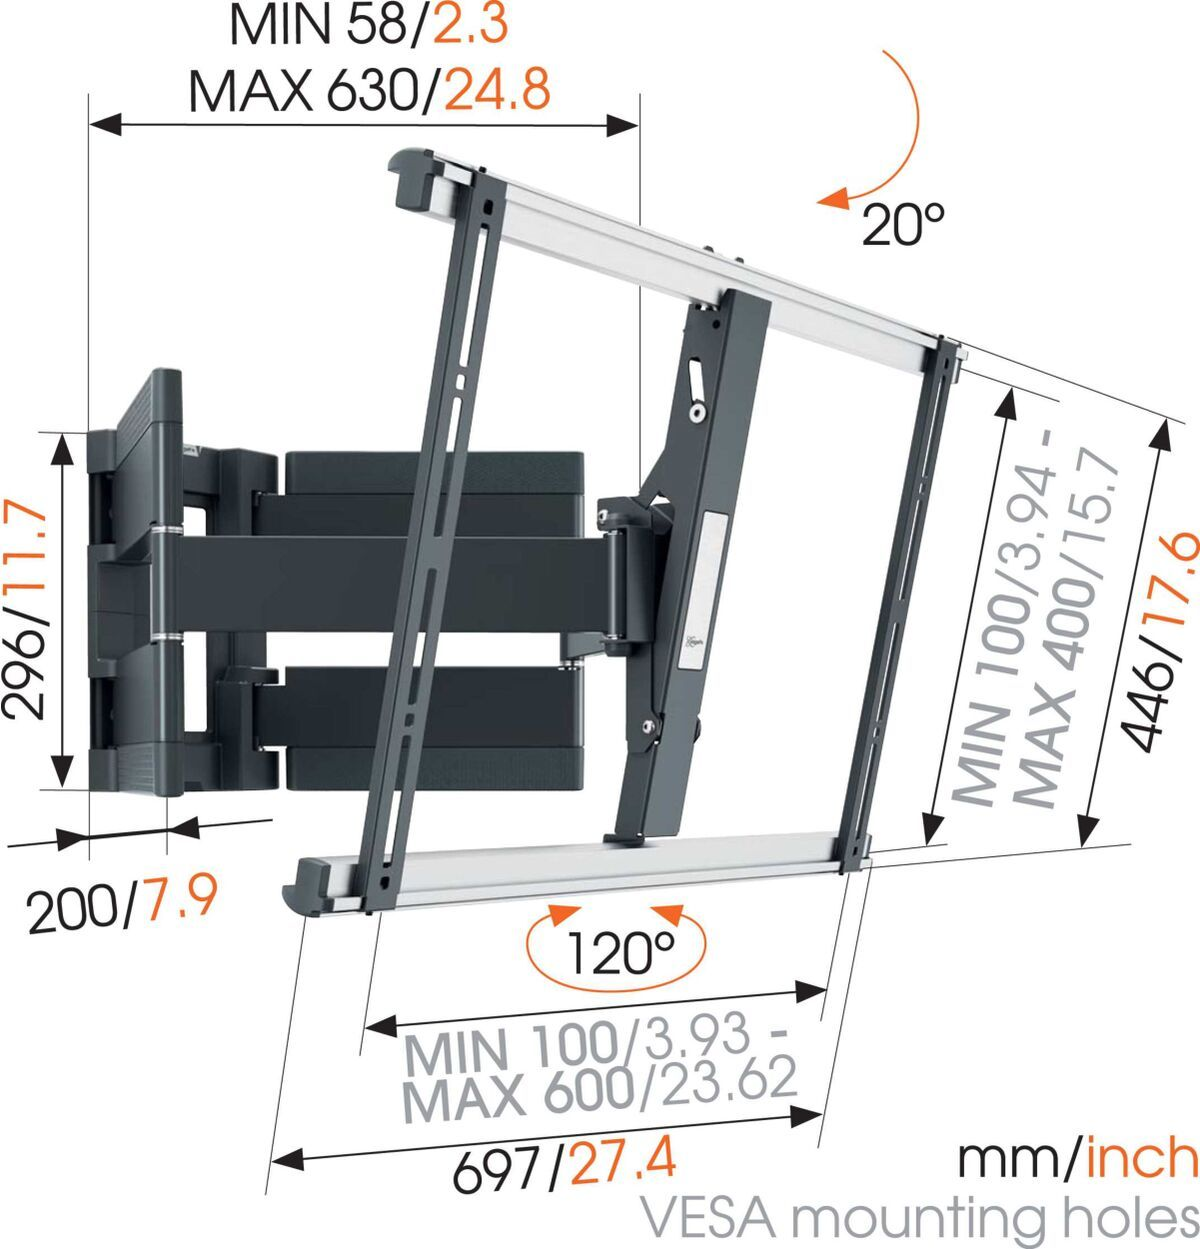 Vogel's THIN 550 ExtraThin Full-Motion TV Wall Mount - Suitable for 40 up to 100 inch TVs - Forward and turning motion (up to 120°) - Tilt up to 20° - Dimensions